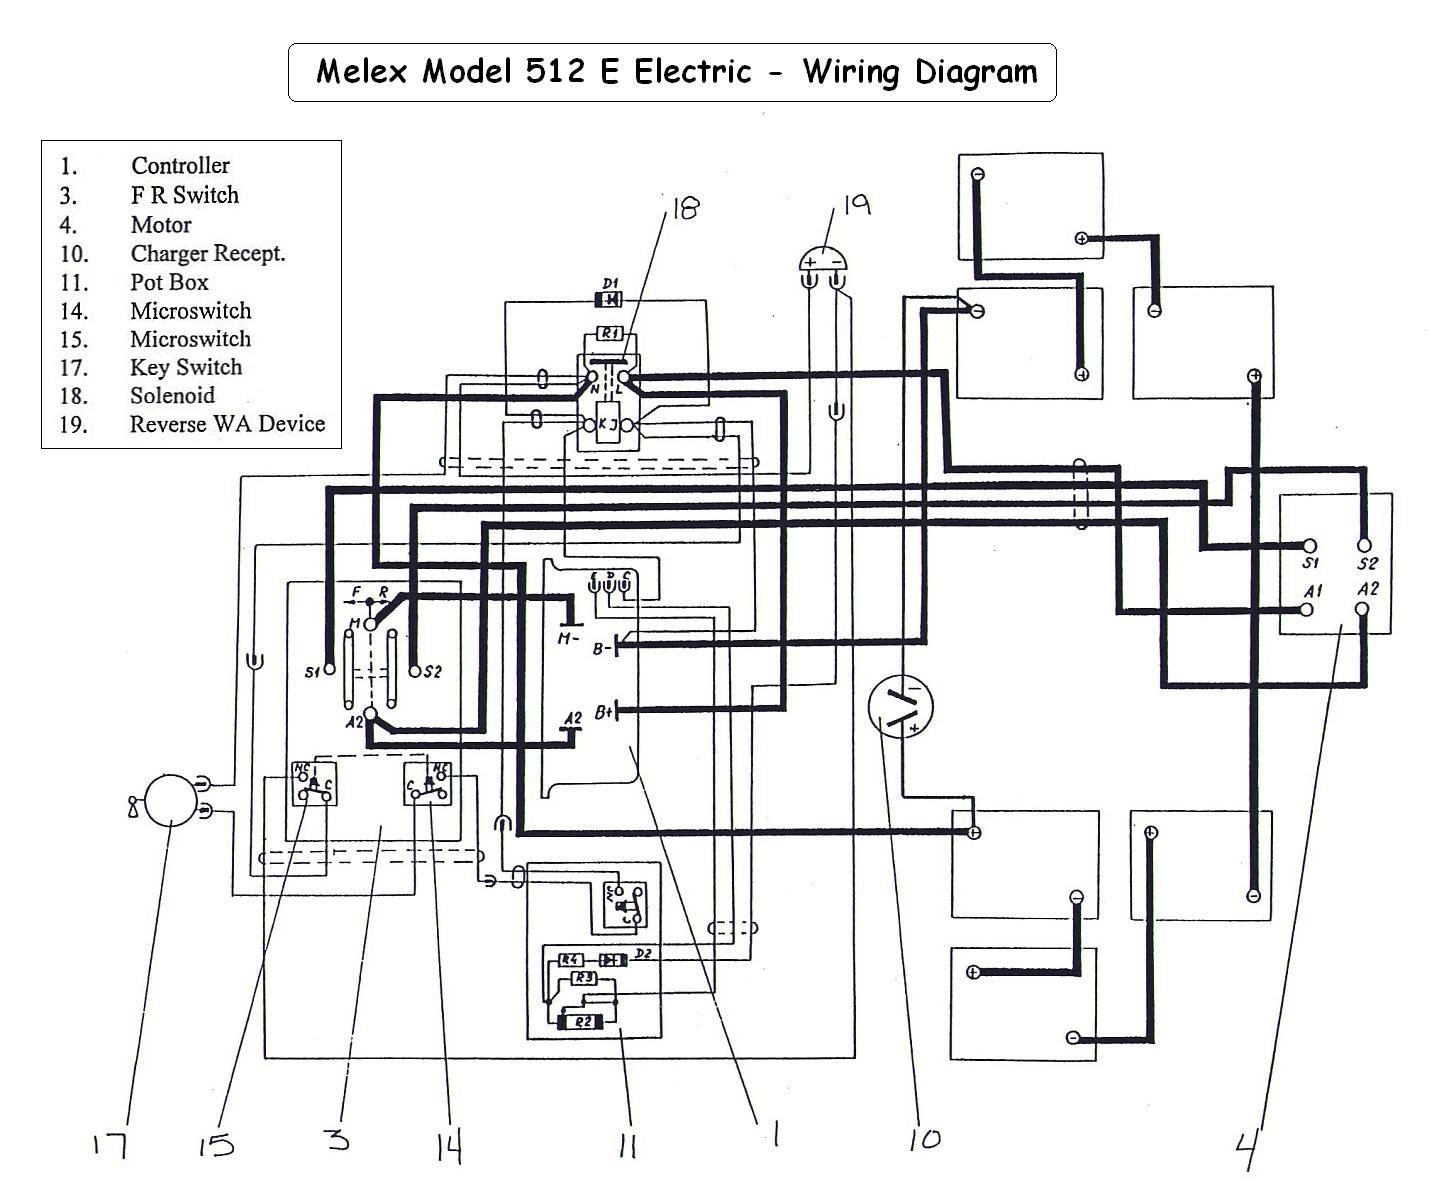 Wiring Diagram For 36 Volt Golf Cart | Manual E-Books - Golf Cart Wiring Diagram